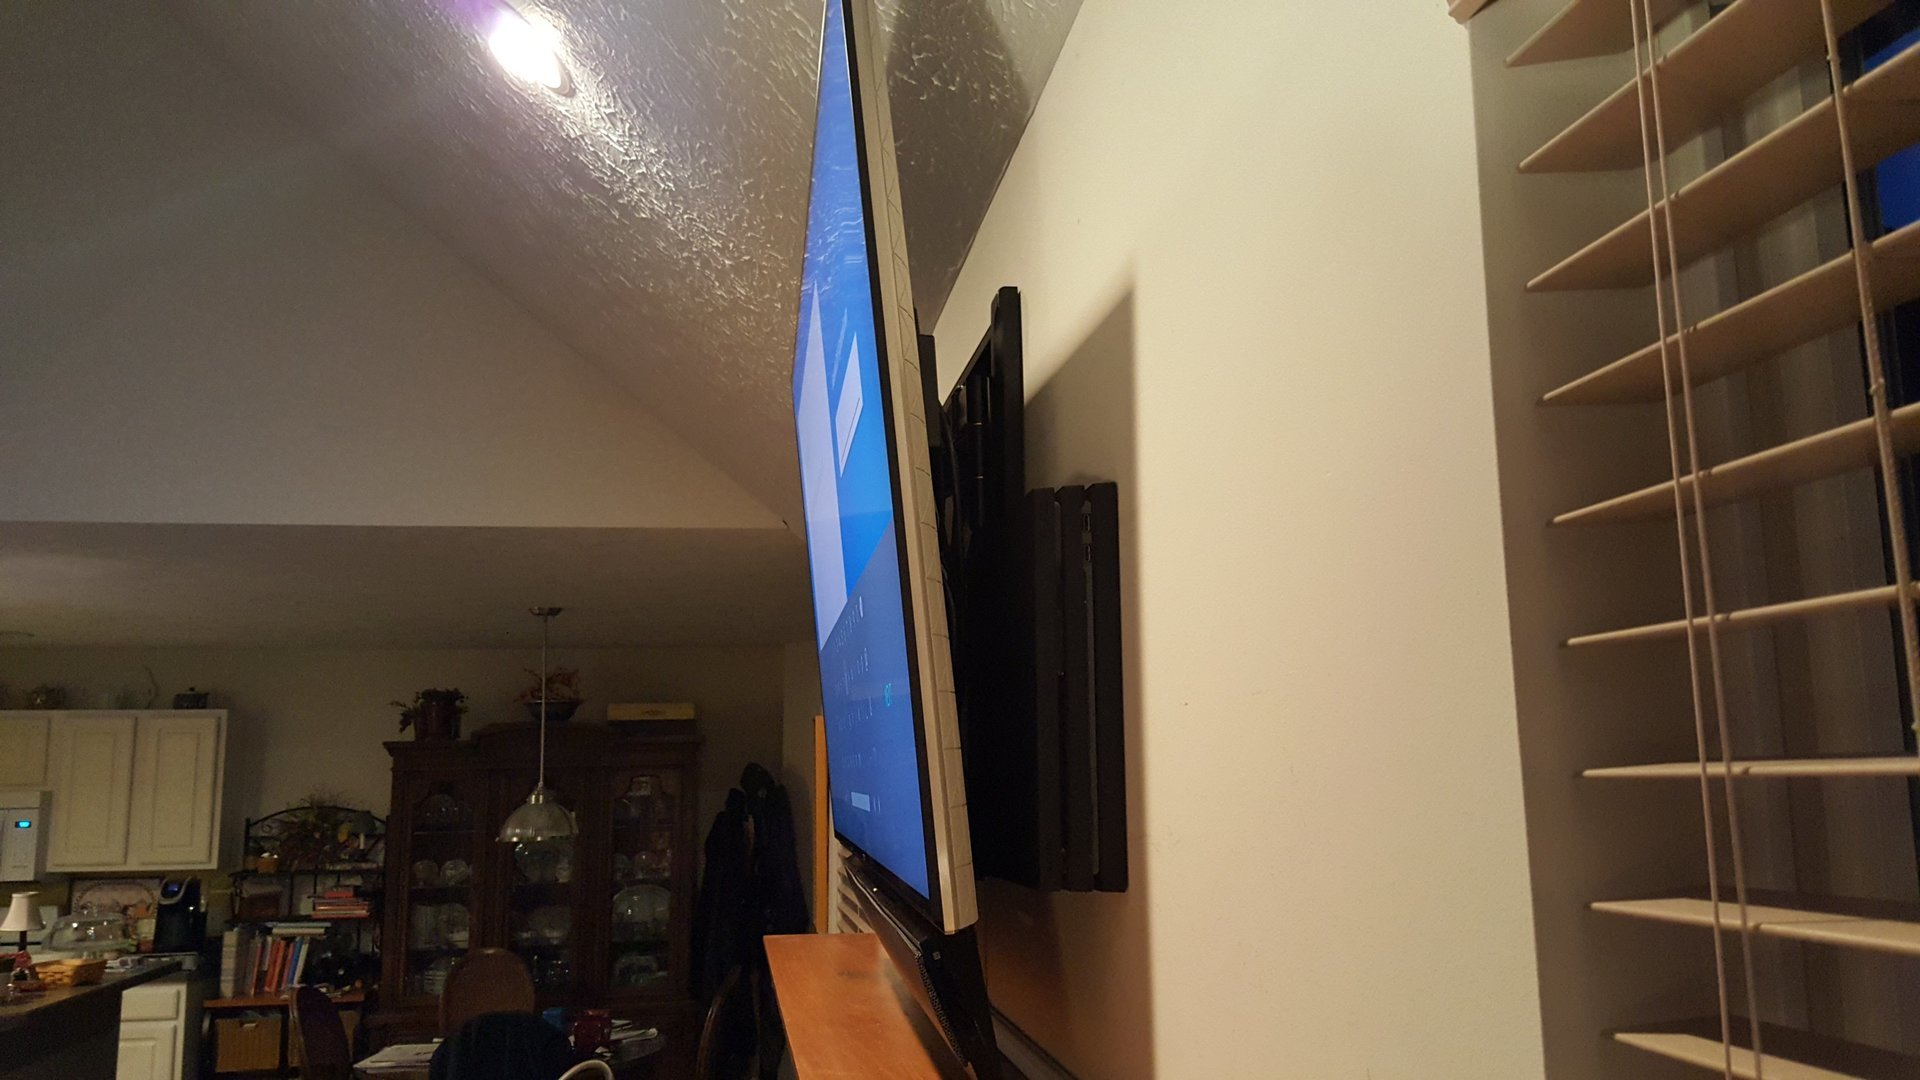 Tv Wall Mounting Fireplace Installation Setup Wiring Behind Hiding Cable Box For Mounted